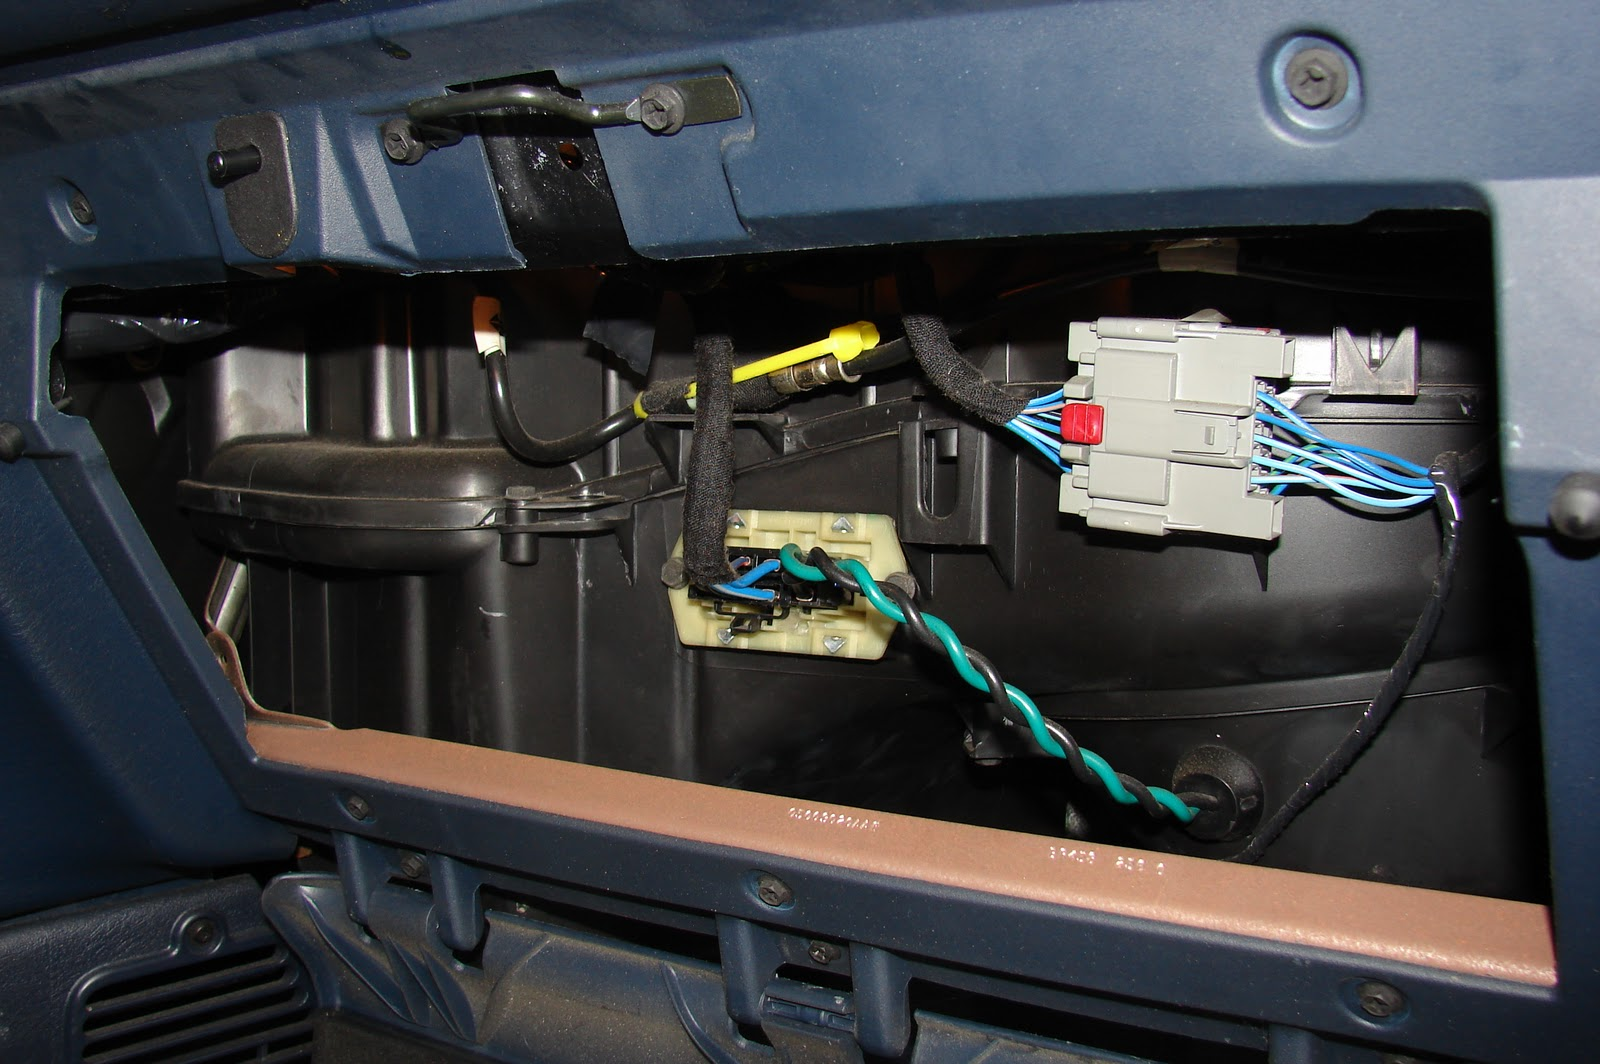 2007 Dodge Caravan Fuse Box Location 36 Wiring Diagram Images Grand Dsc08751 My Commentary And Technical Help Fan Only Works On